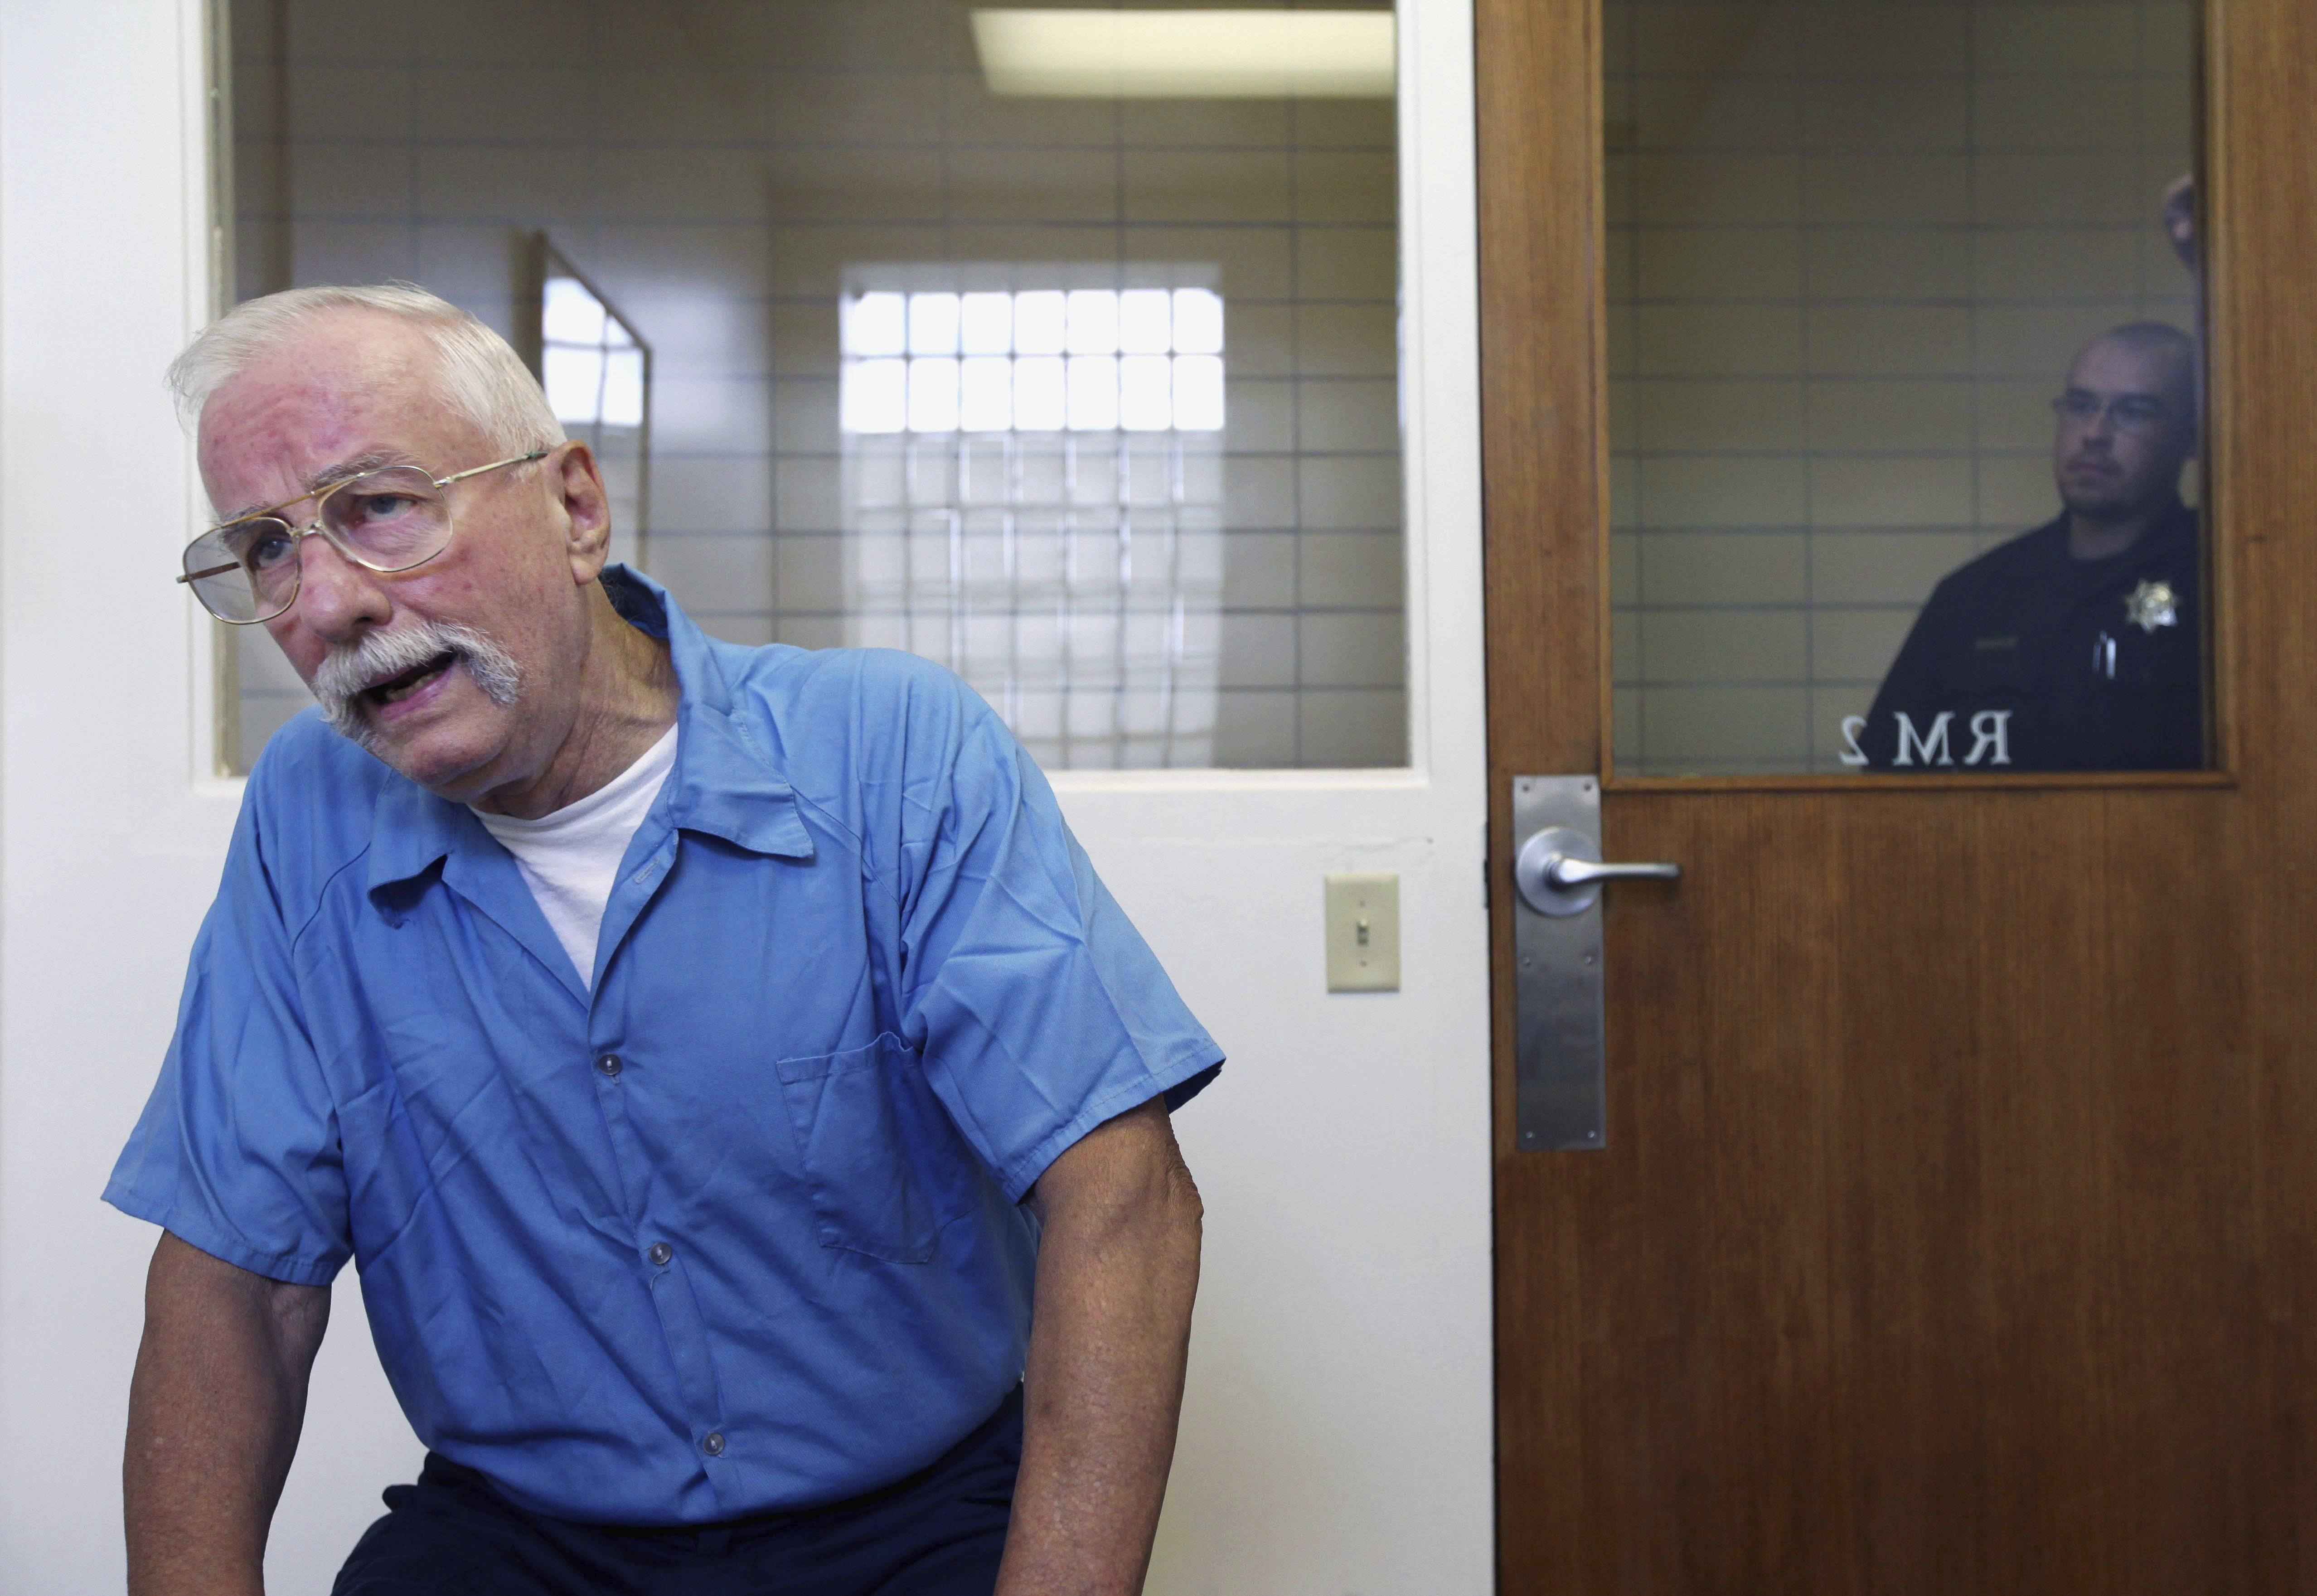 Jack McCullough, a 73-year-old former police officer, speaks during an interview last August with the Chicago Sun-Times at the Pontiac Correctional Center. He's serving a life sentence for the 1957 death of 7-year-old Maria Ridulph.